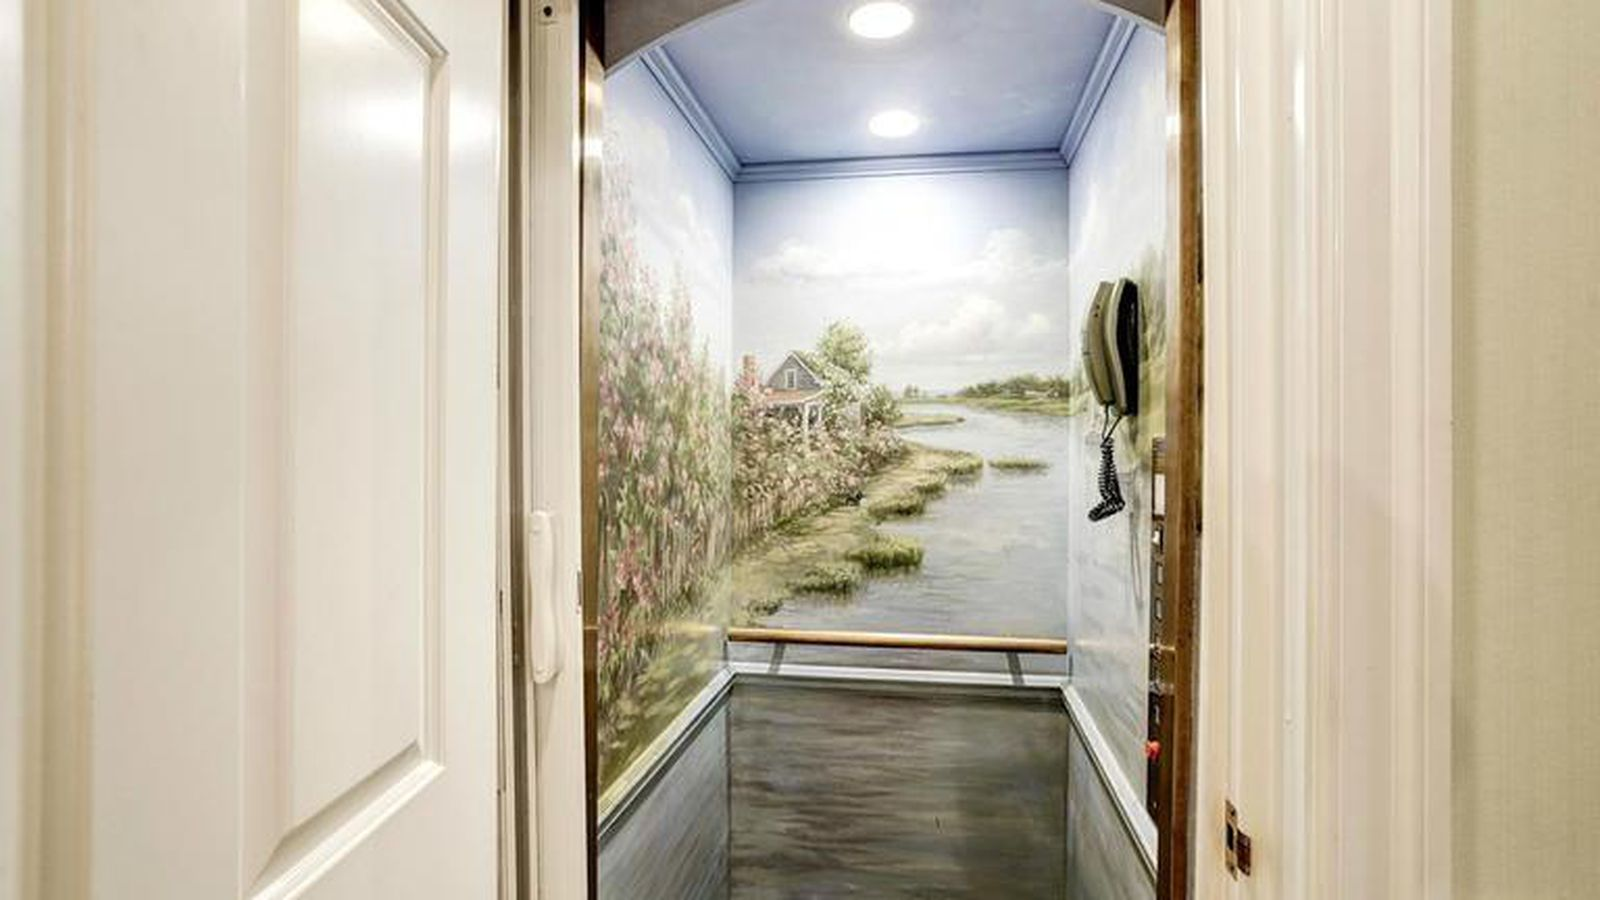 5 pretty and pretty weird elevators in homes for sale in Elevators for sale